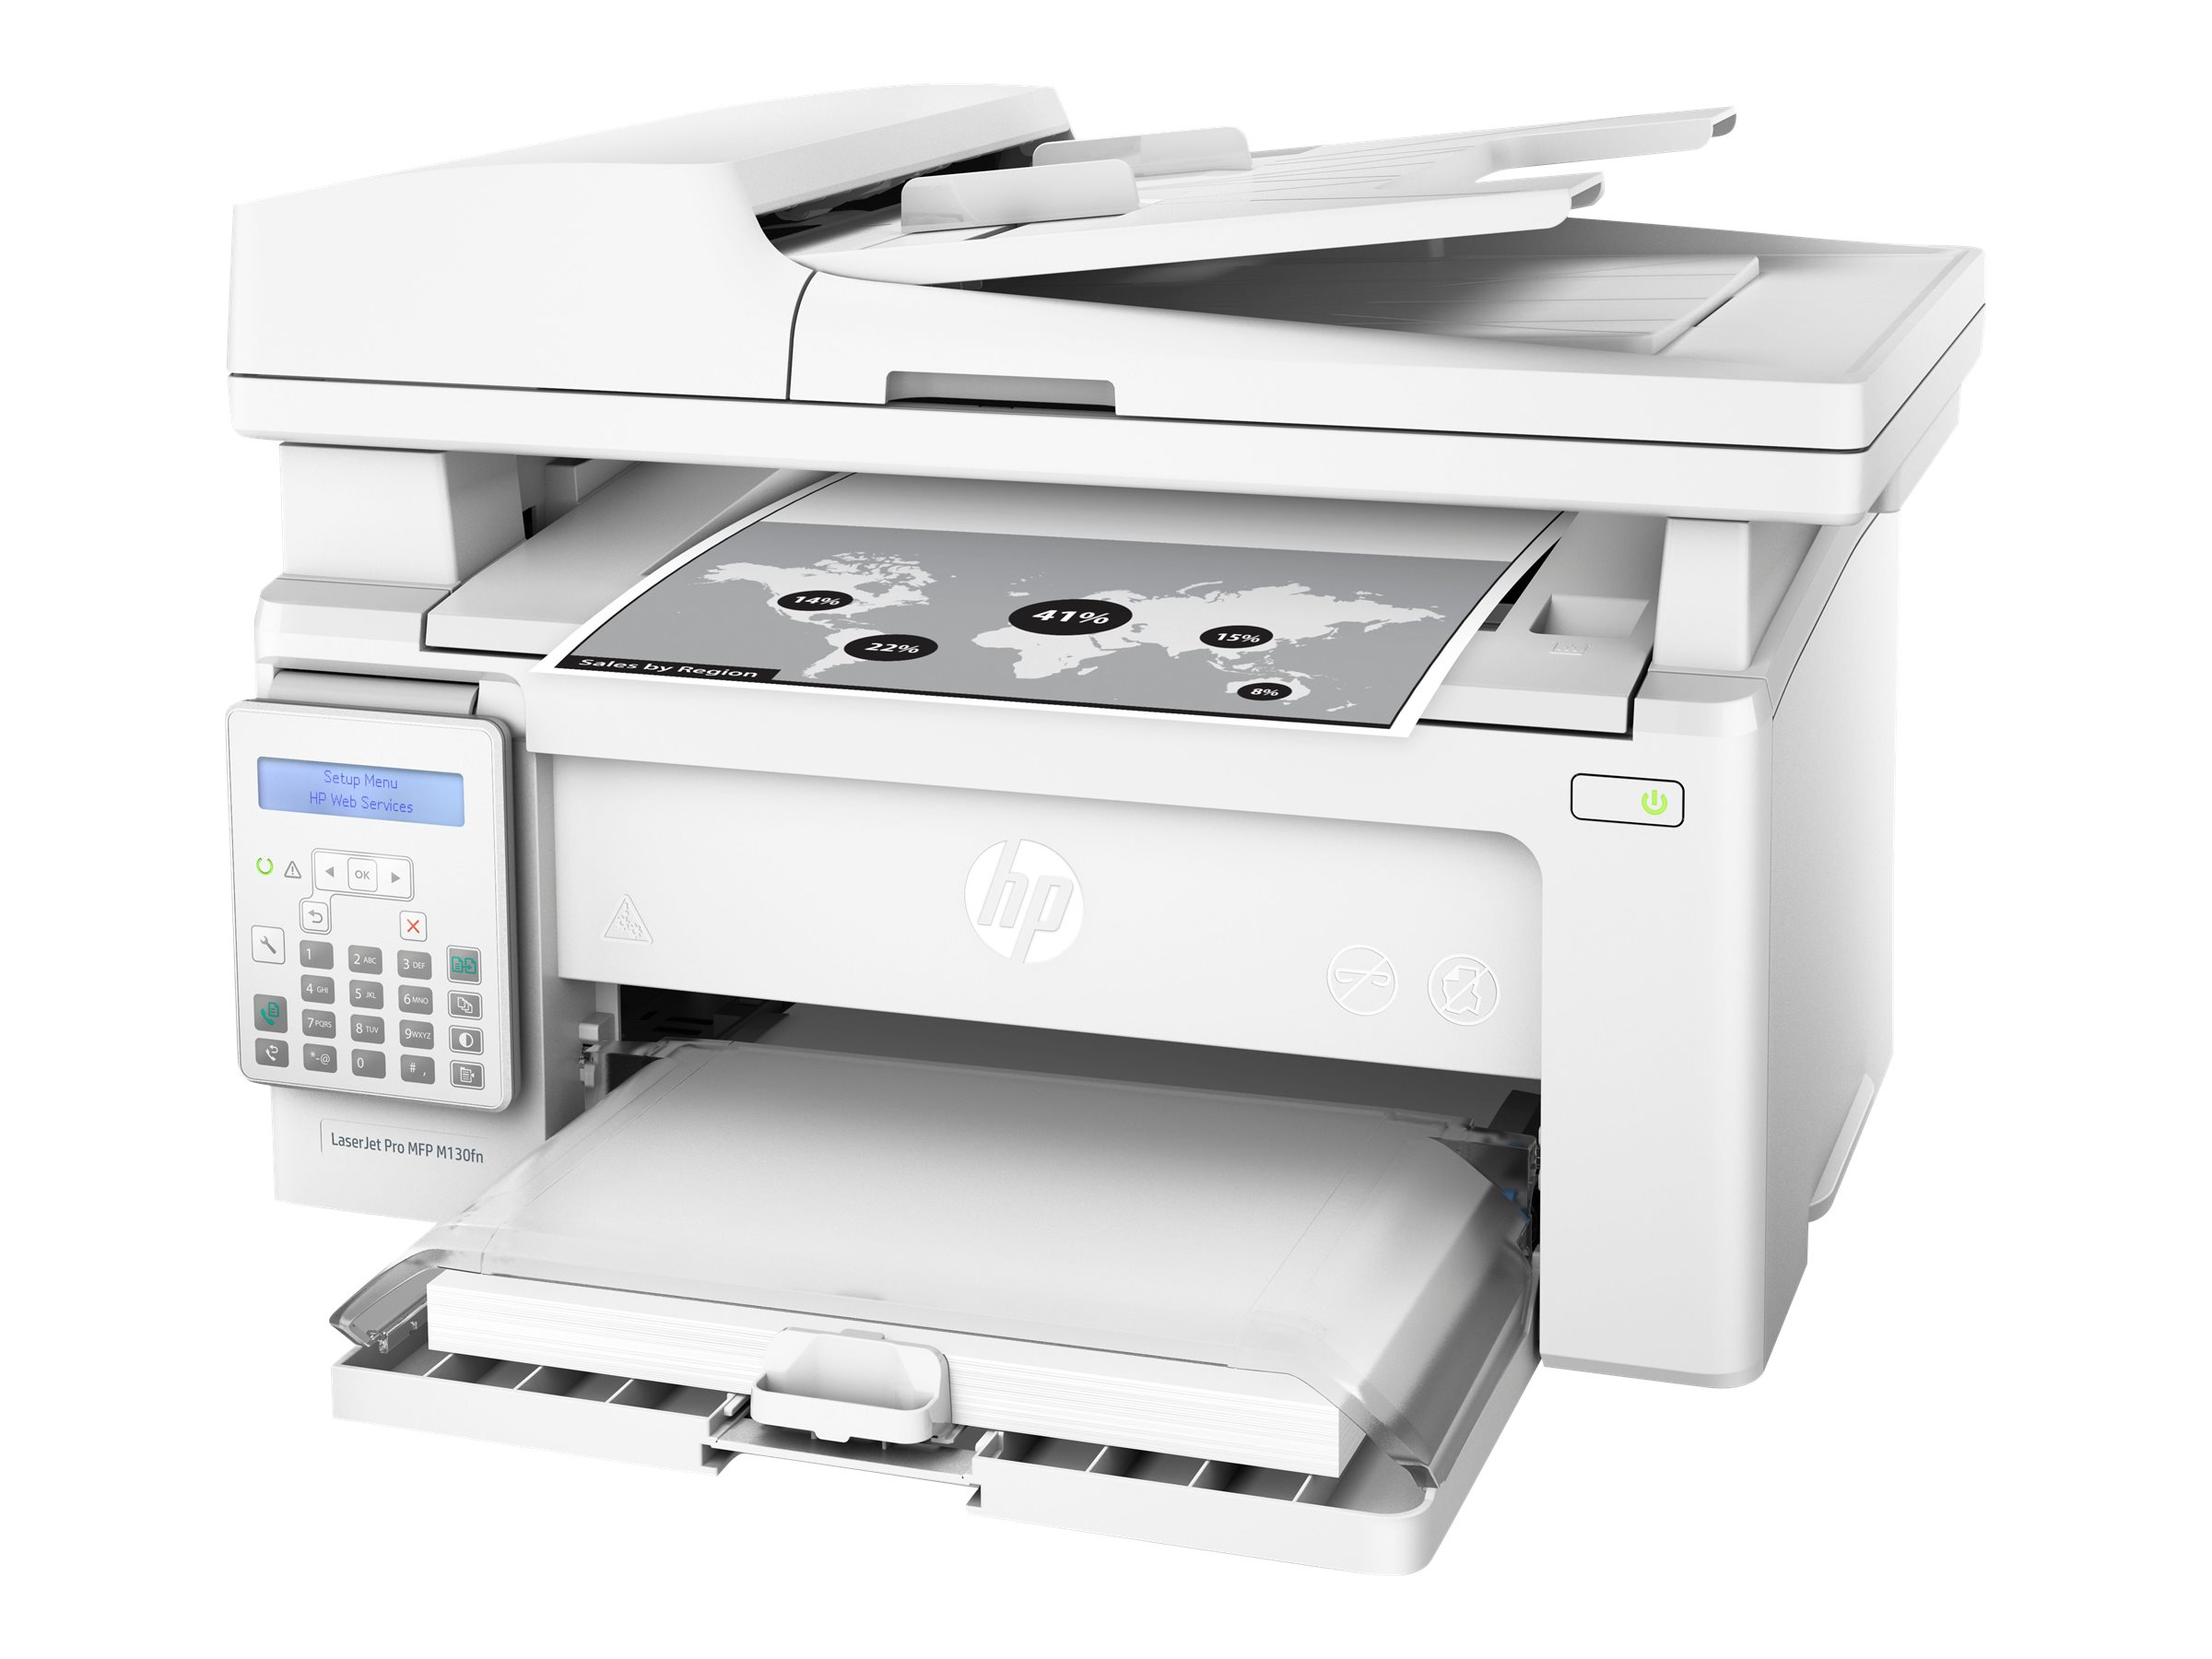 HP LaserJet Pro MFP M130fn - multifunction printer - B/W